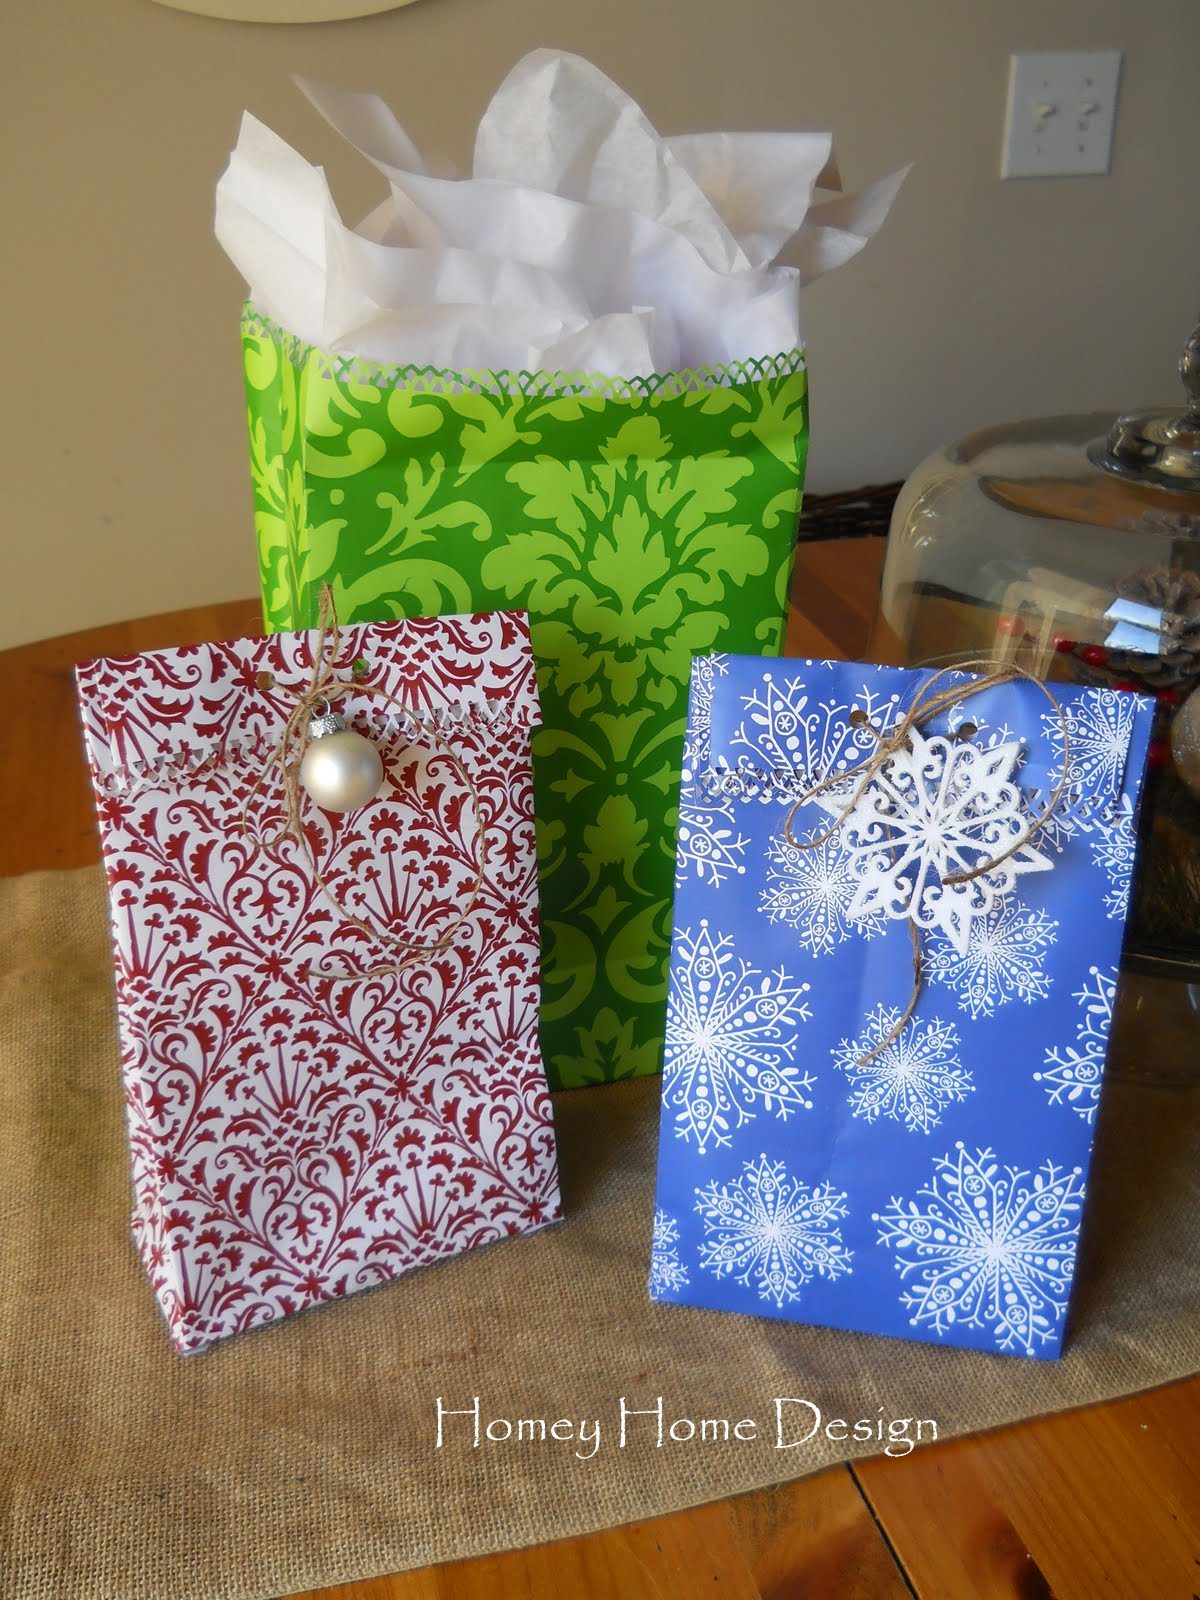 I Think I'm Finally Done With The Christmas Shopping But Now I Have All The  Wrapping! I Think I'll Be Giving Out A Lot Of Bags This Year!